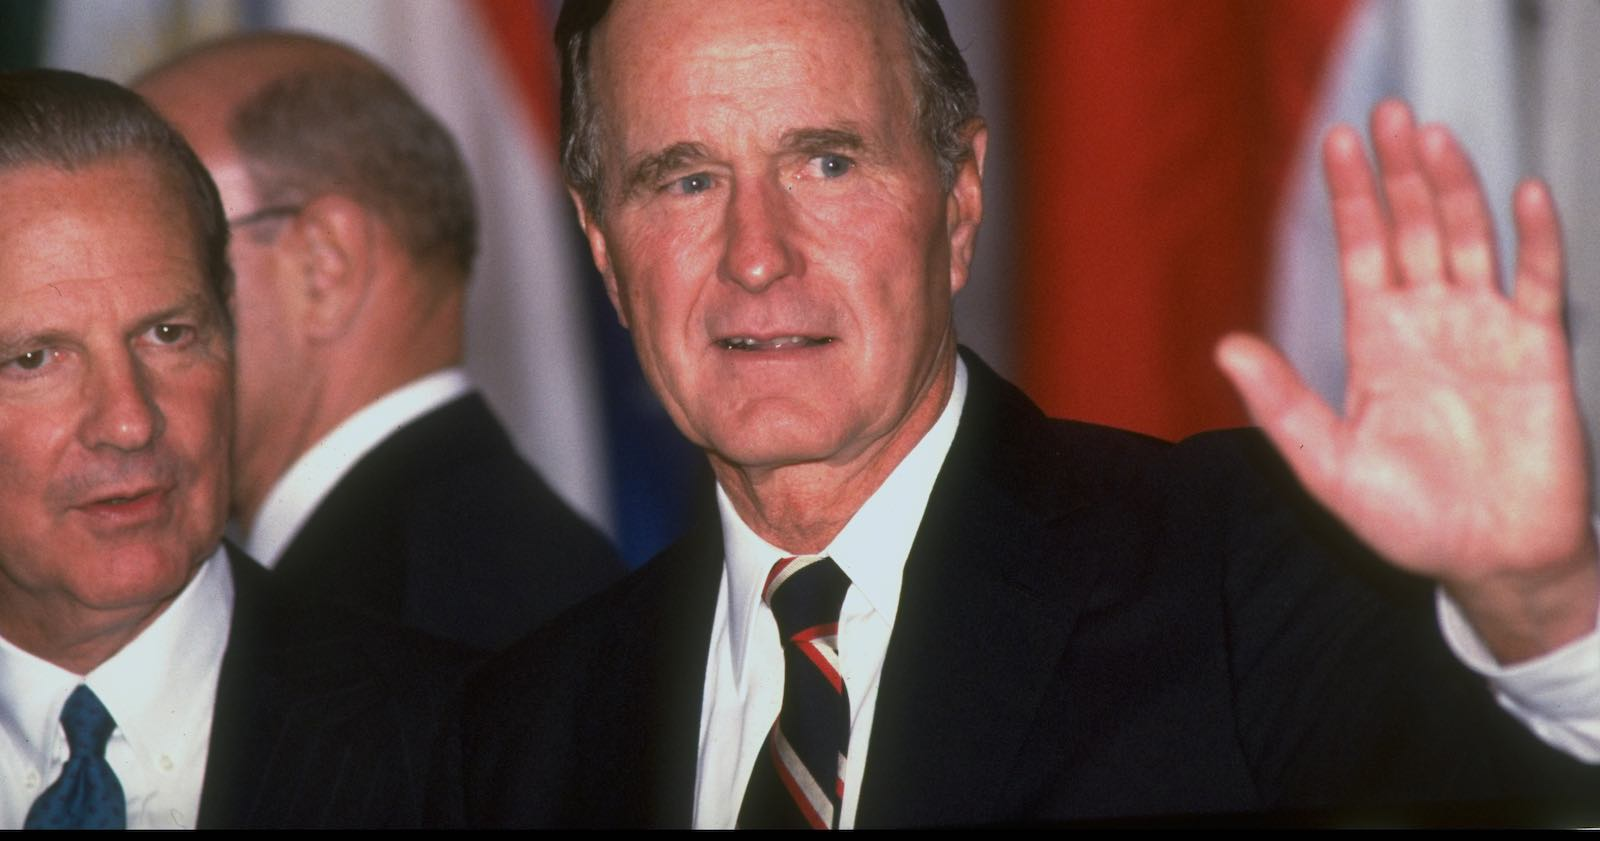 GEORGE H W BUSH—An International President